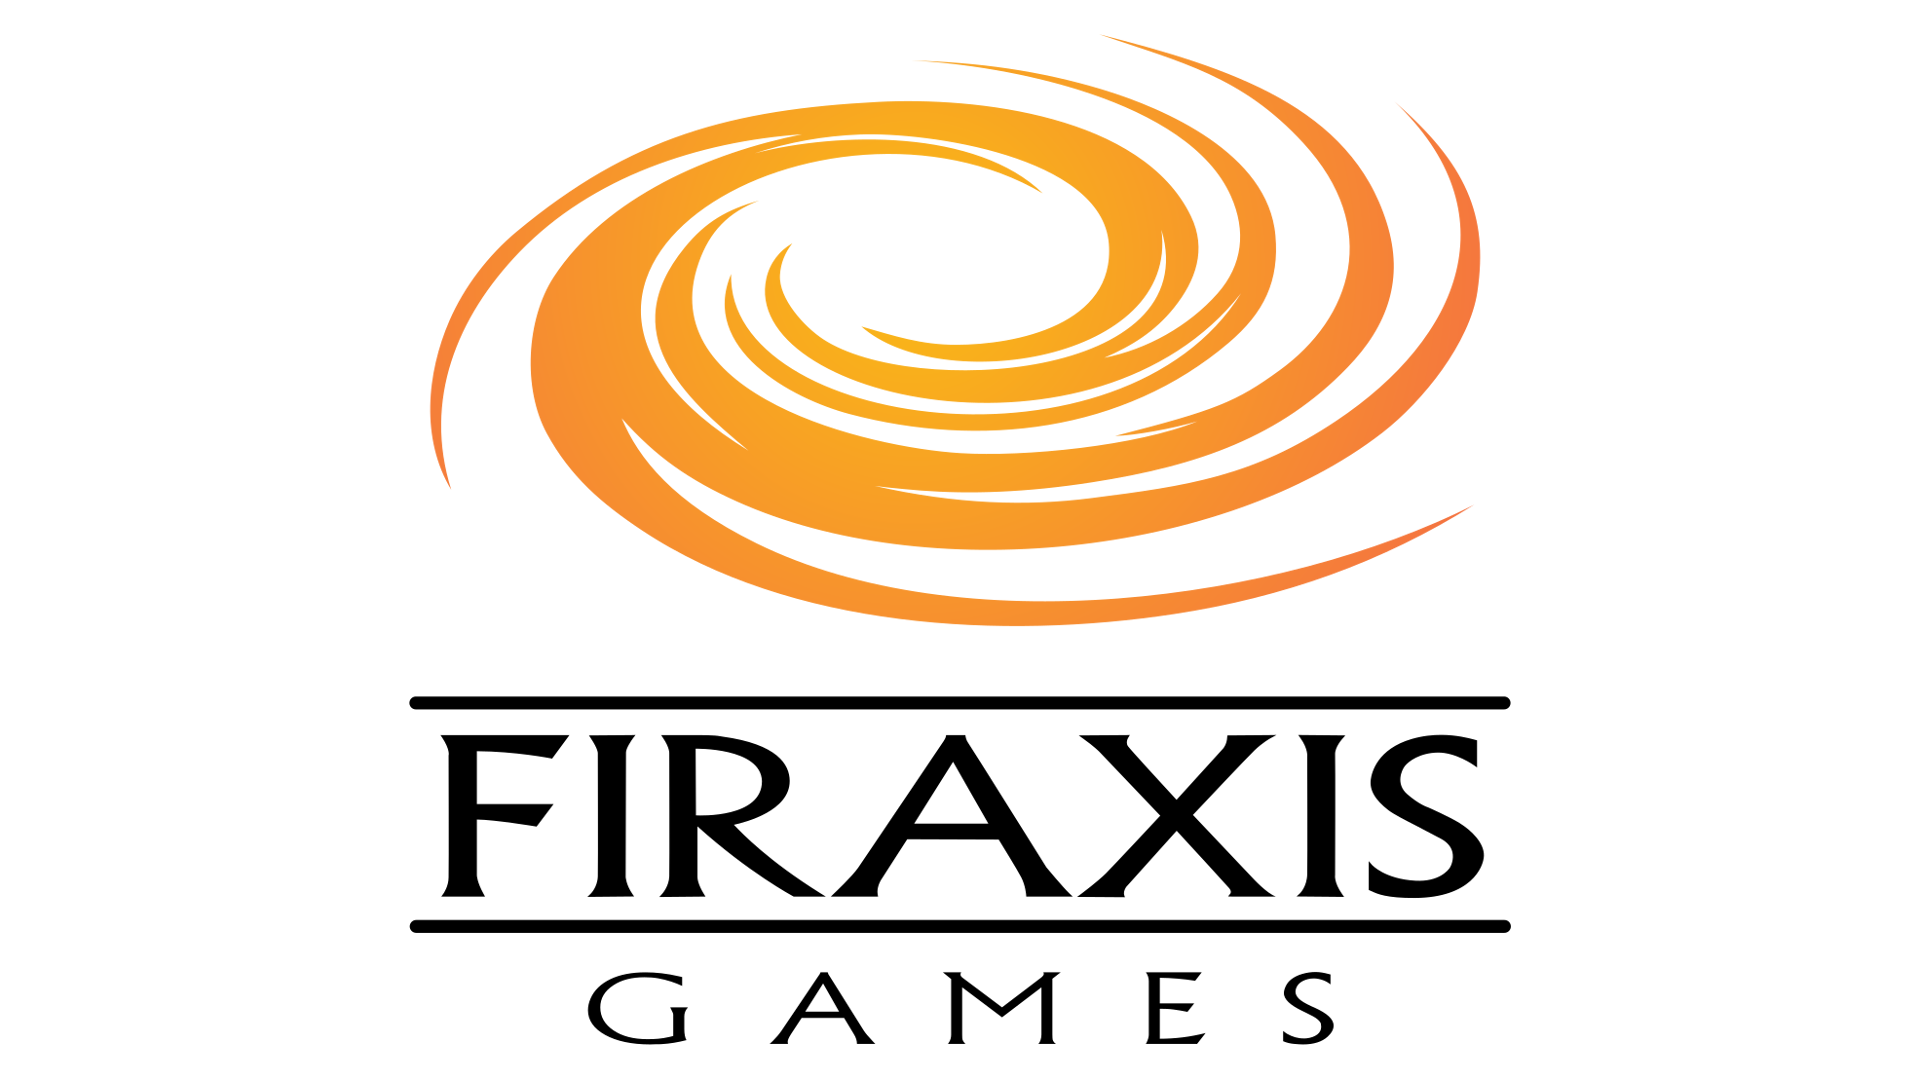 Firaxis Games: XCOM clone with Marvel heroes allegedly in the works